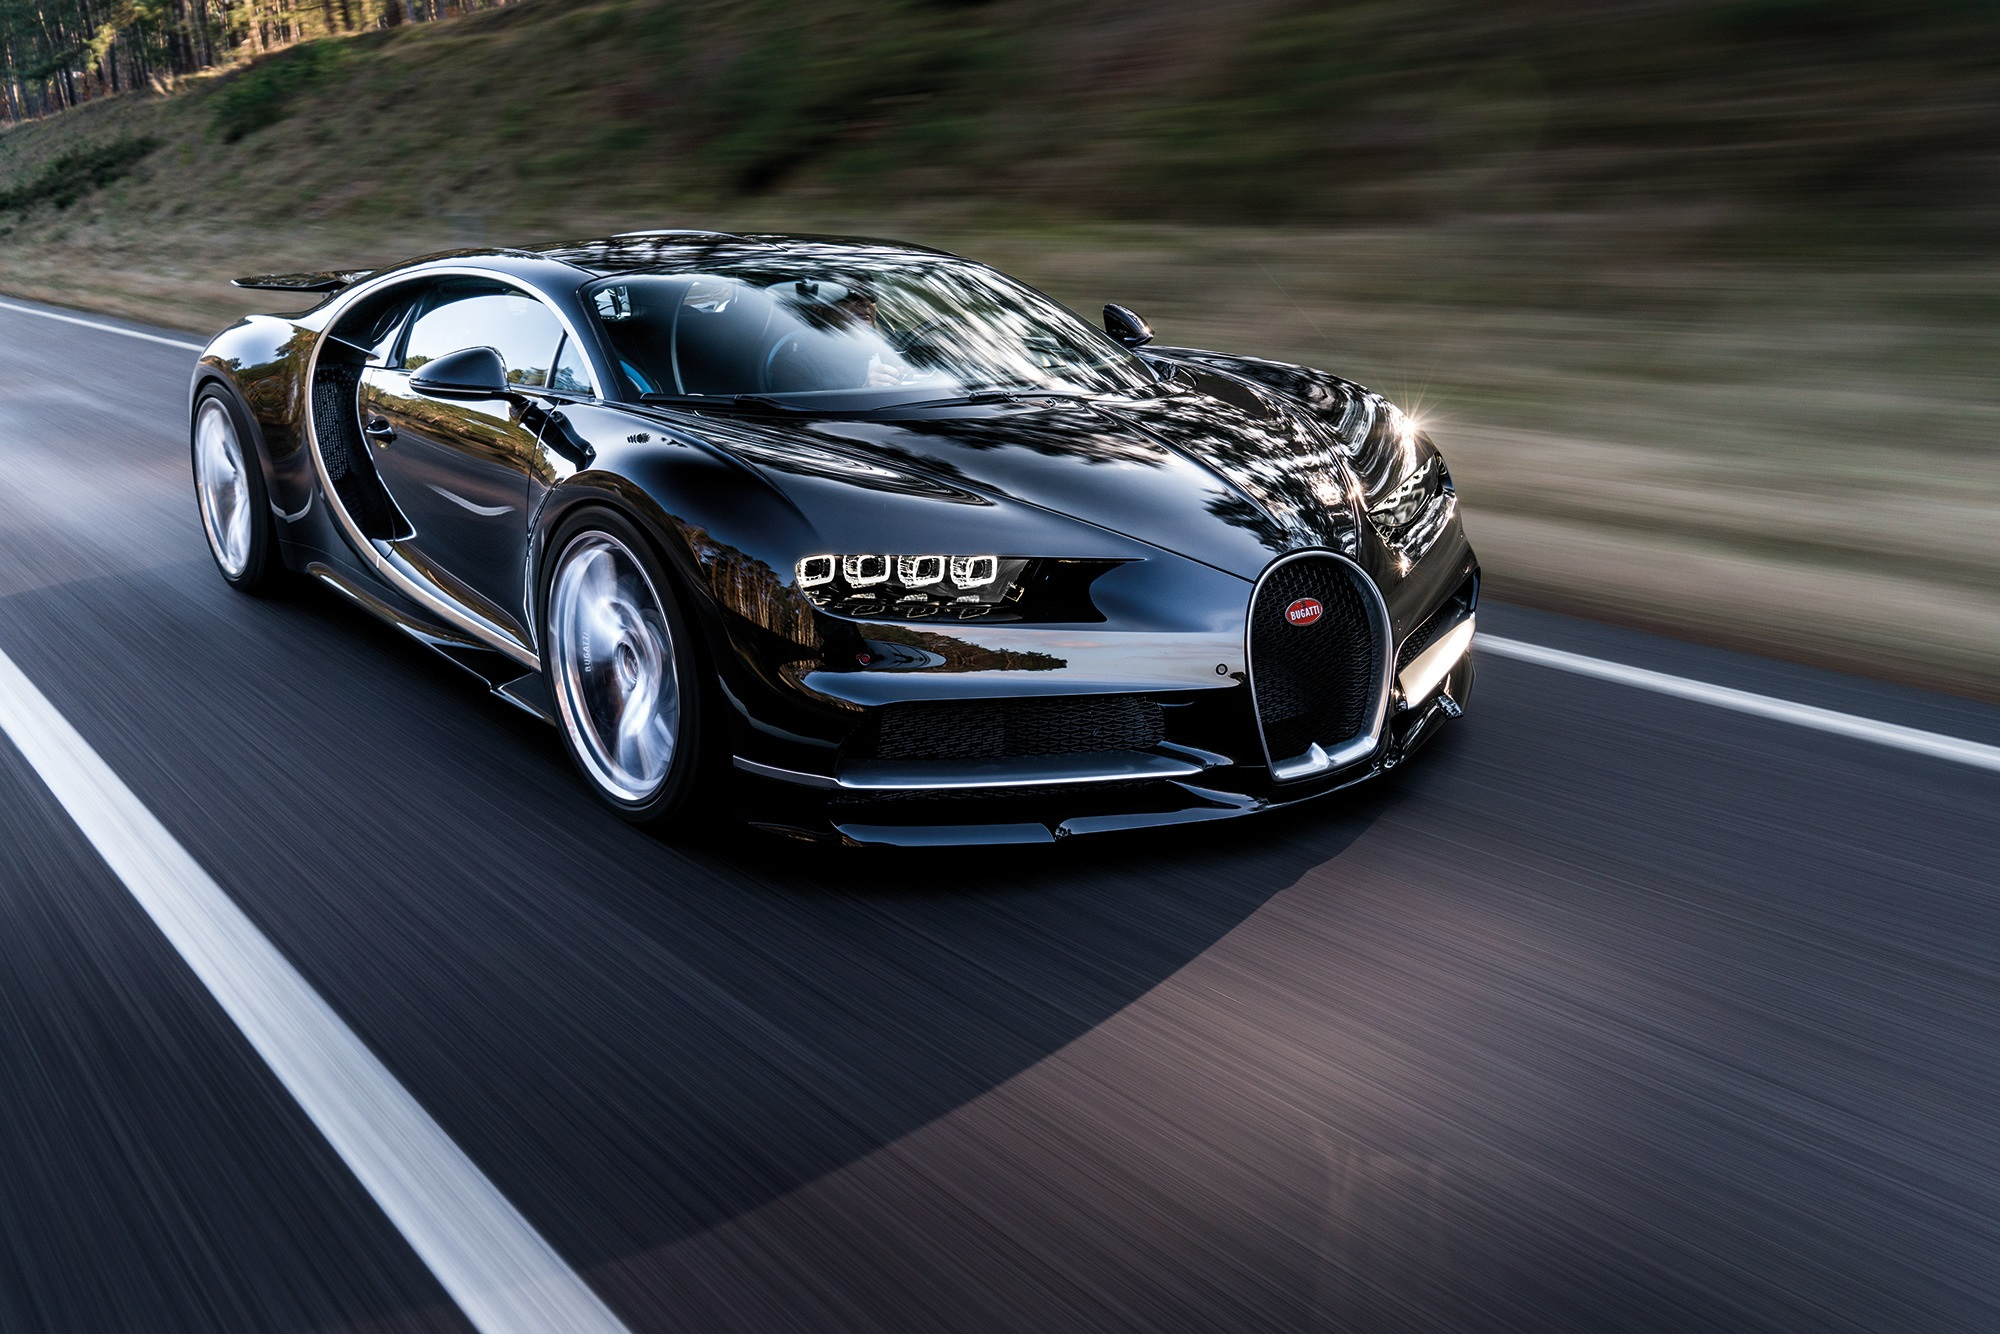 2017 bugatti chiron full hd wallpaper